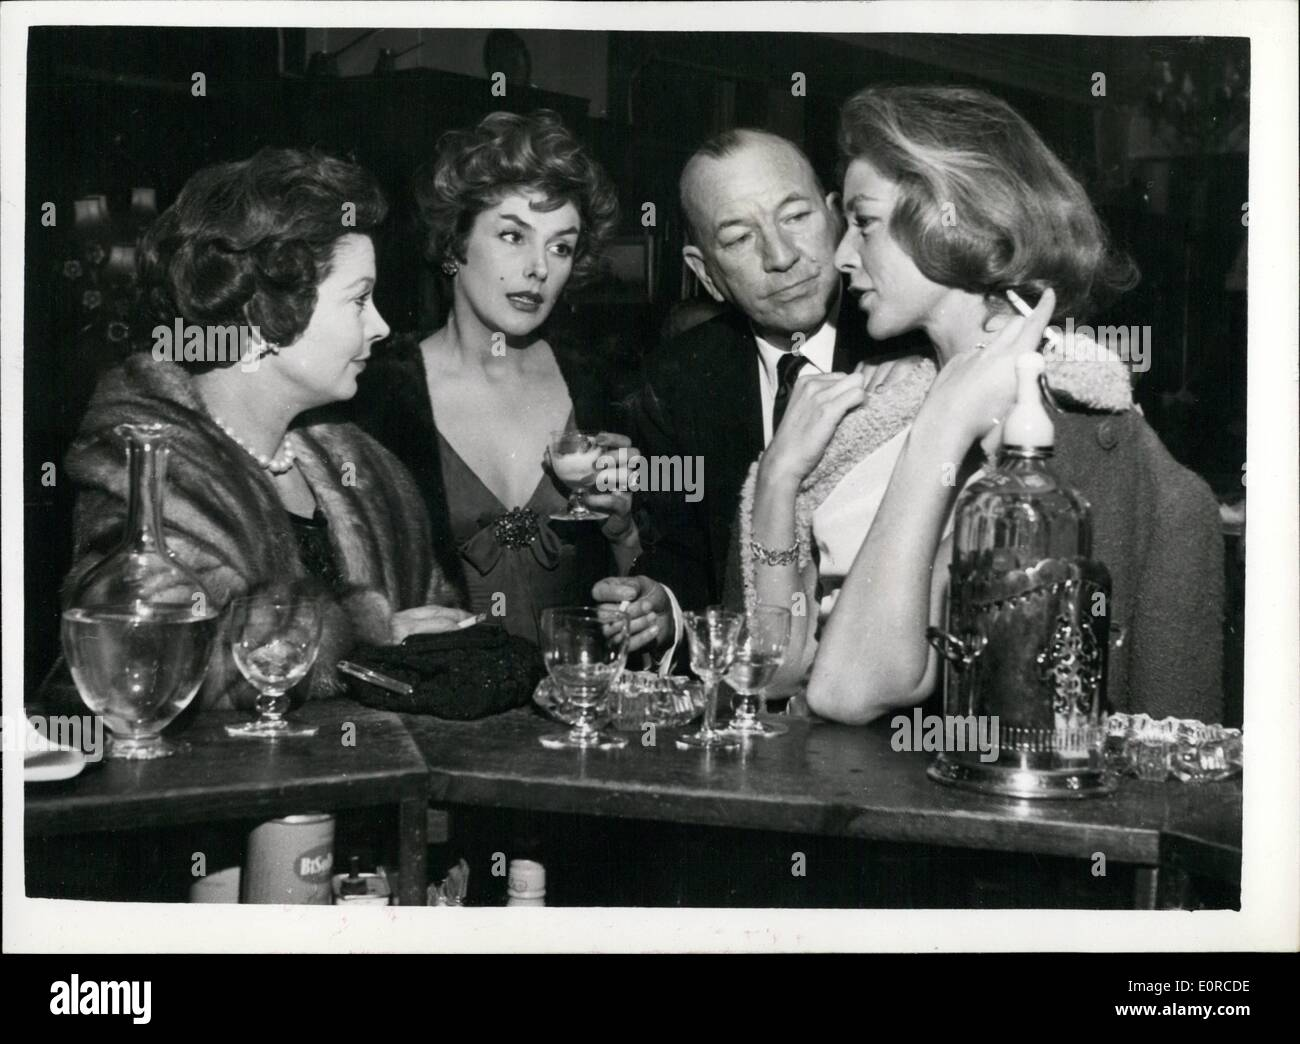 Jan. 01, 1959 - The lucky squire of London town Noel Coward escorts three fascinating women. Mr.Noel Coward was surely the luckiest man in London last night, when, beaming like a benevolent sultan he escorted three ofthe world's most fascinating women, Kay Kendall, Vivian Leigh and Lauren Bacall , to the St Martin's theatre. They went to see ''The Grass is Greener'' starring their mutual friend, Celia Johnson . The party had been laid on by Vivian Leigh. Photo shows During the interval Noel taken the trio for a drink and here he is chatting at the bar to (L.to R - Stock Image